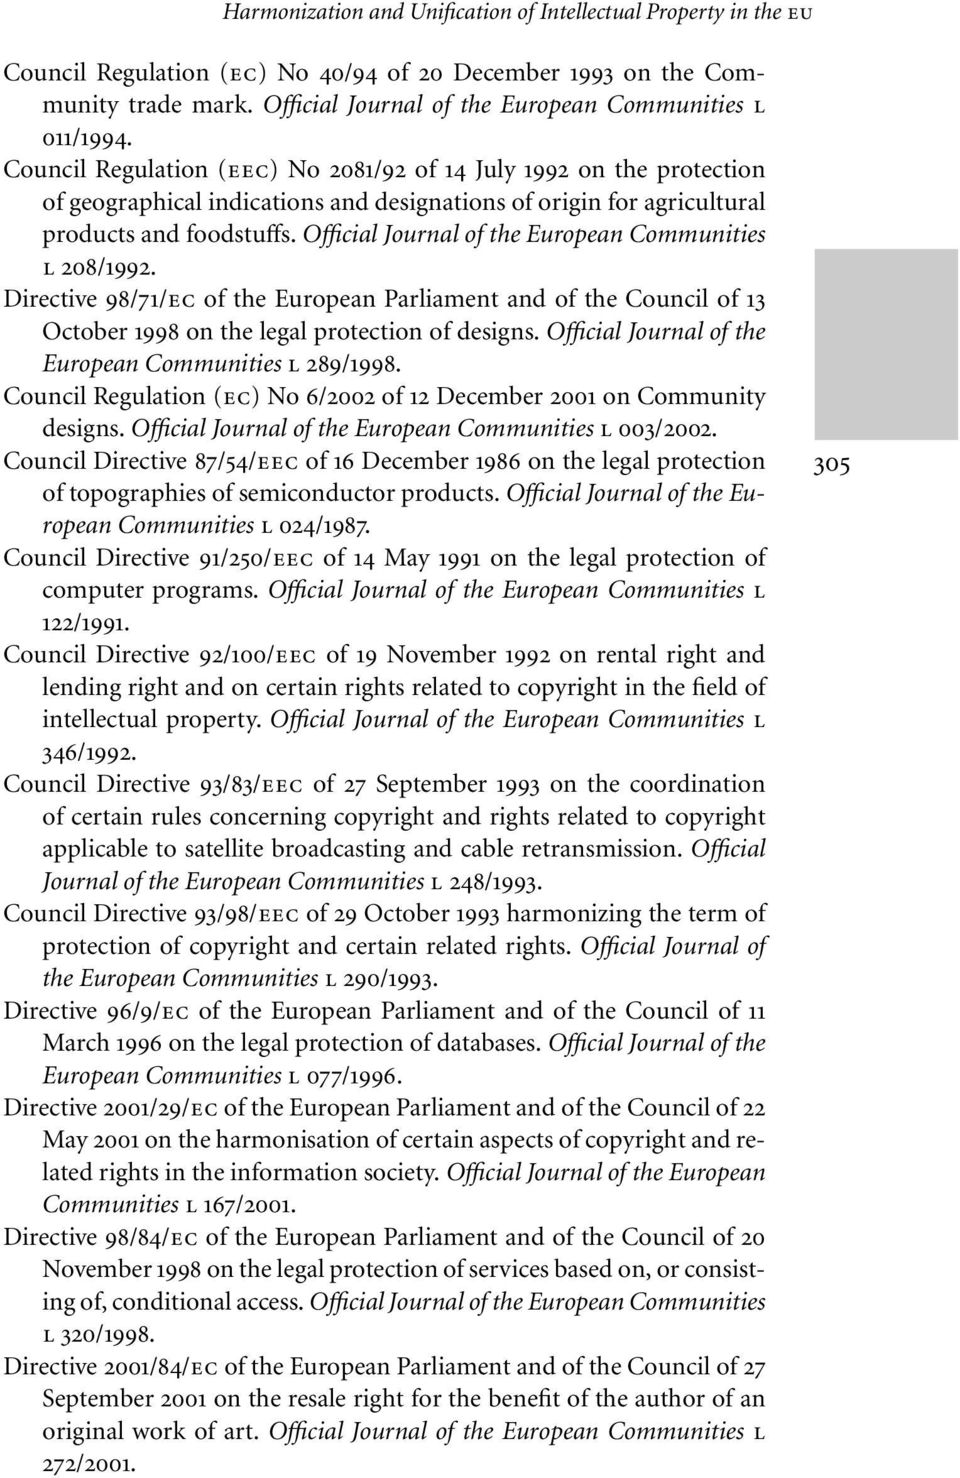 Council Regulation (EEC) No 2081/92 of 14 July 1992 on the protection of geographical indications and designations of origin for agricultural products and foodstuffs.